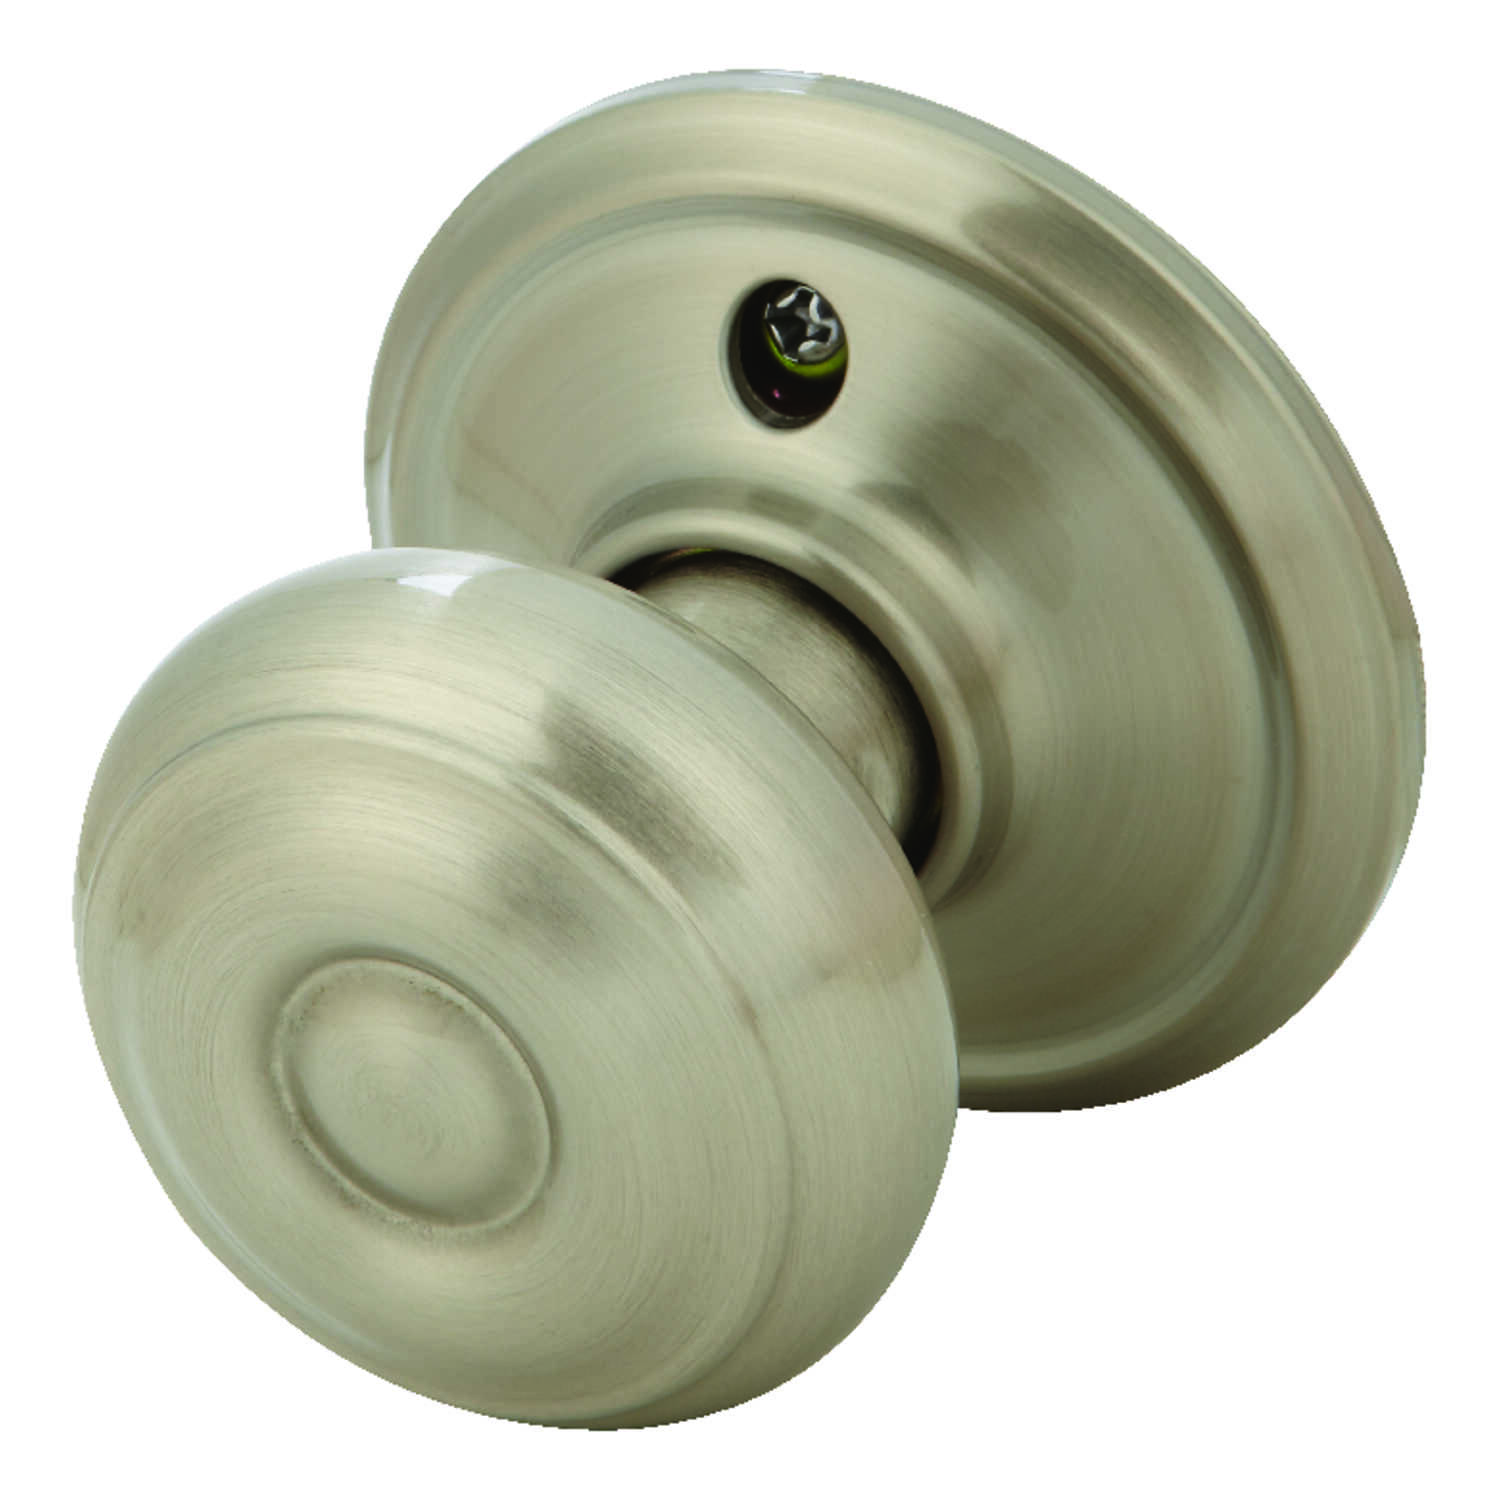 Schlage  Georgian  Satin Nickel  Steel  Dummy Knob  2 Grade Right or Left Handed